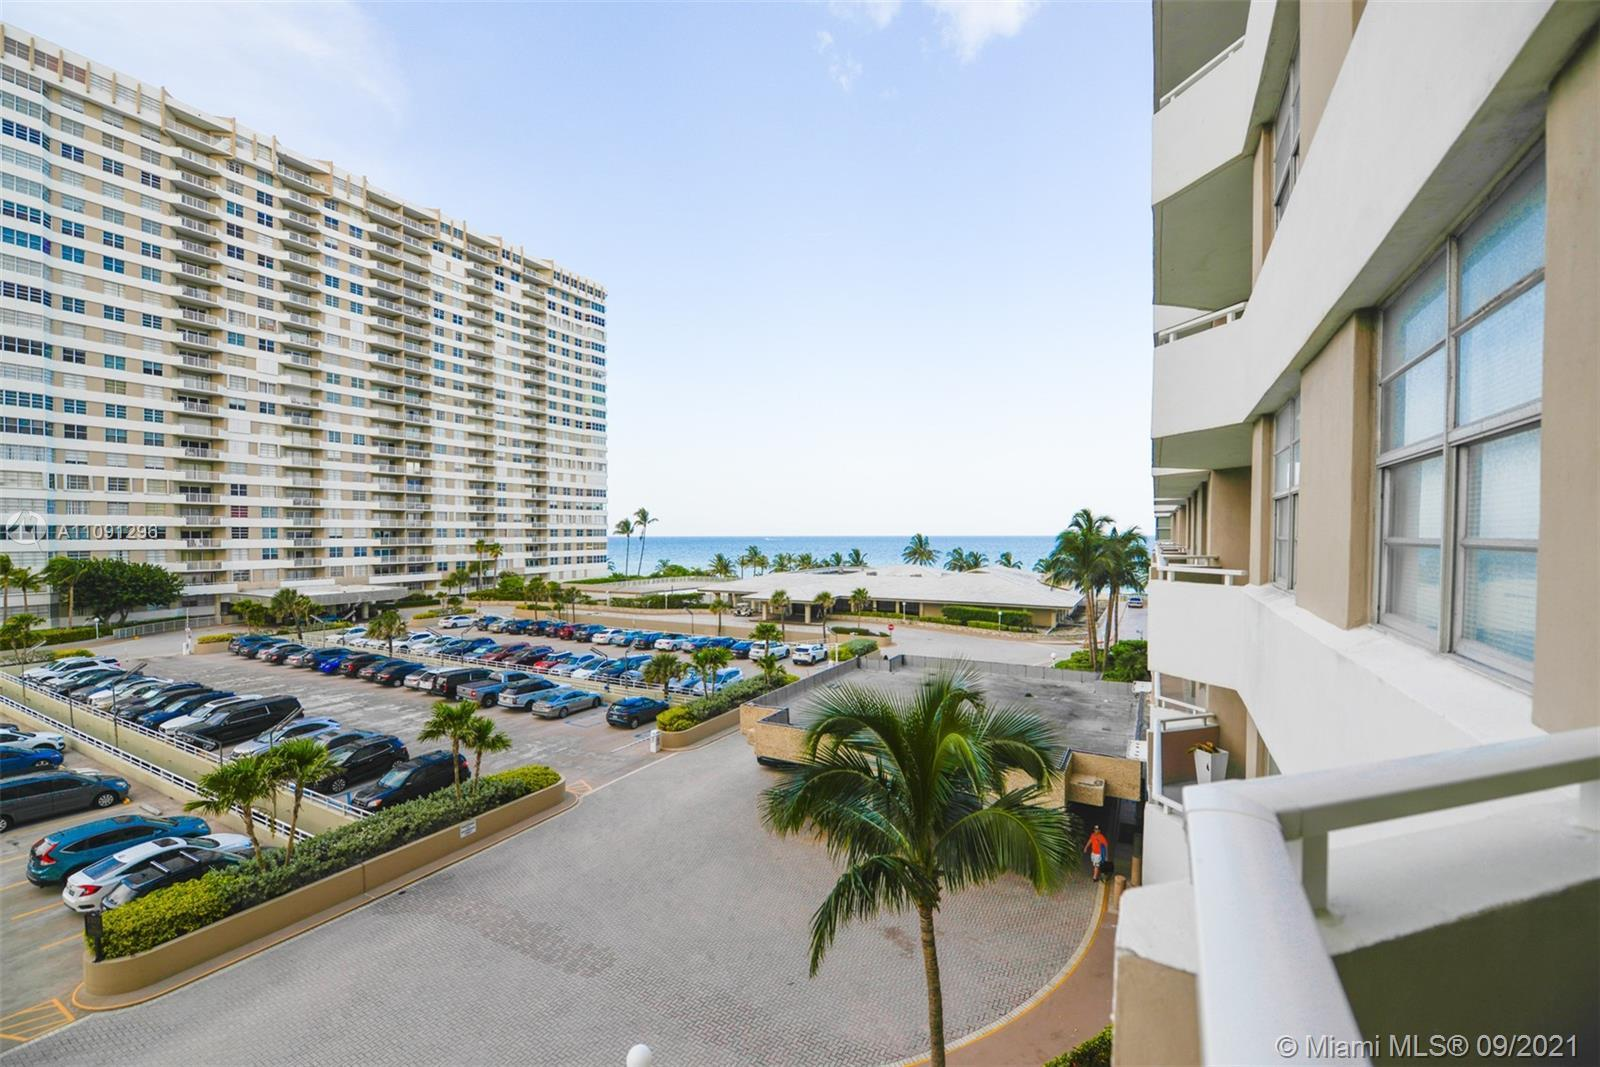 Lovey 1 bedroom unit low floor. With beautiful ocean views from balcony. Blg. Features amenities equ